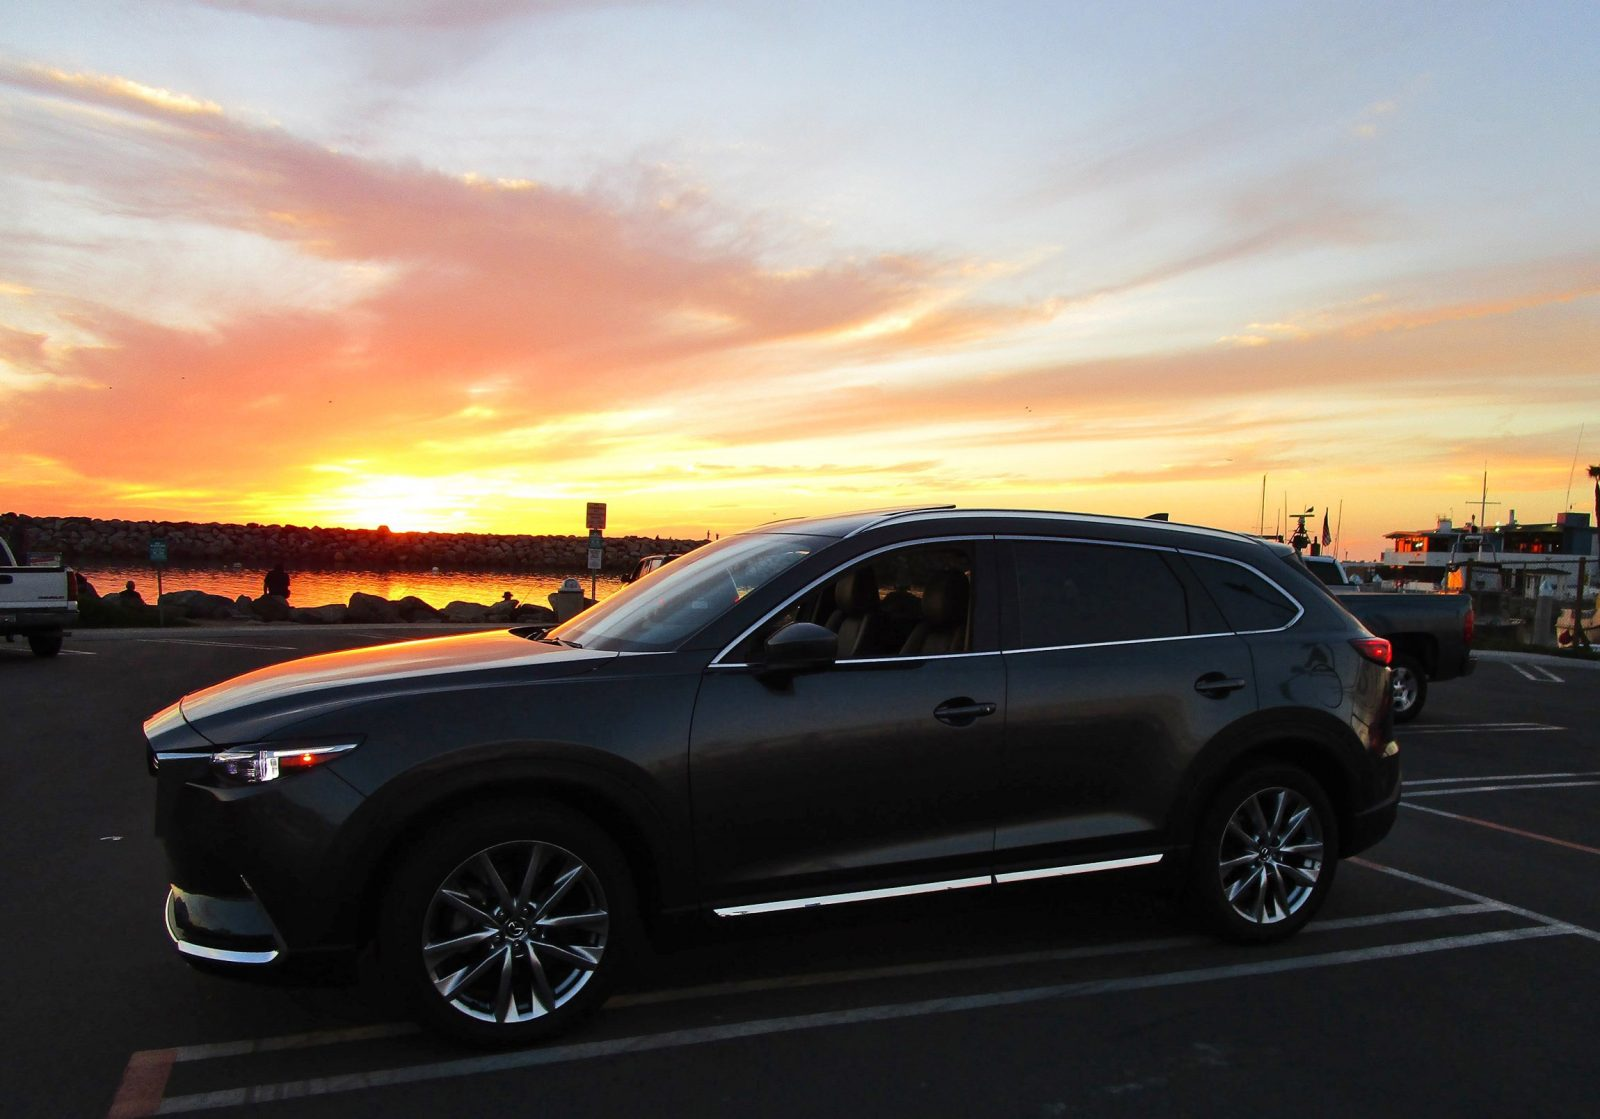 2016 mazda cx 9 signature road test review by ben lewis car revs. Black Bedroom Furniture Sets. Home Design Ideas